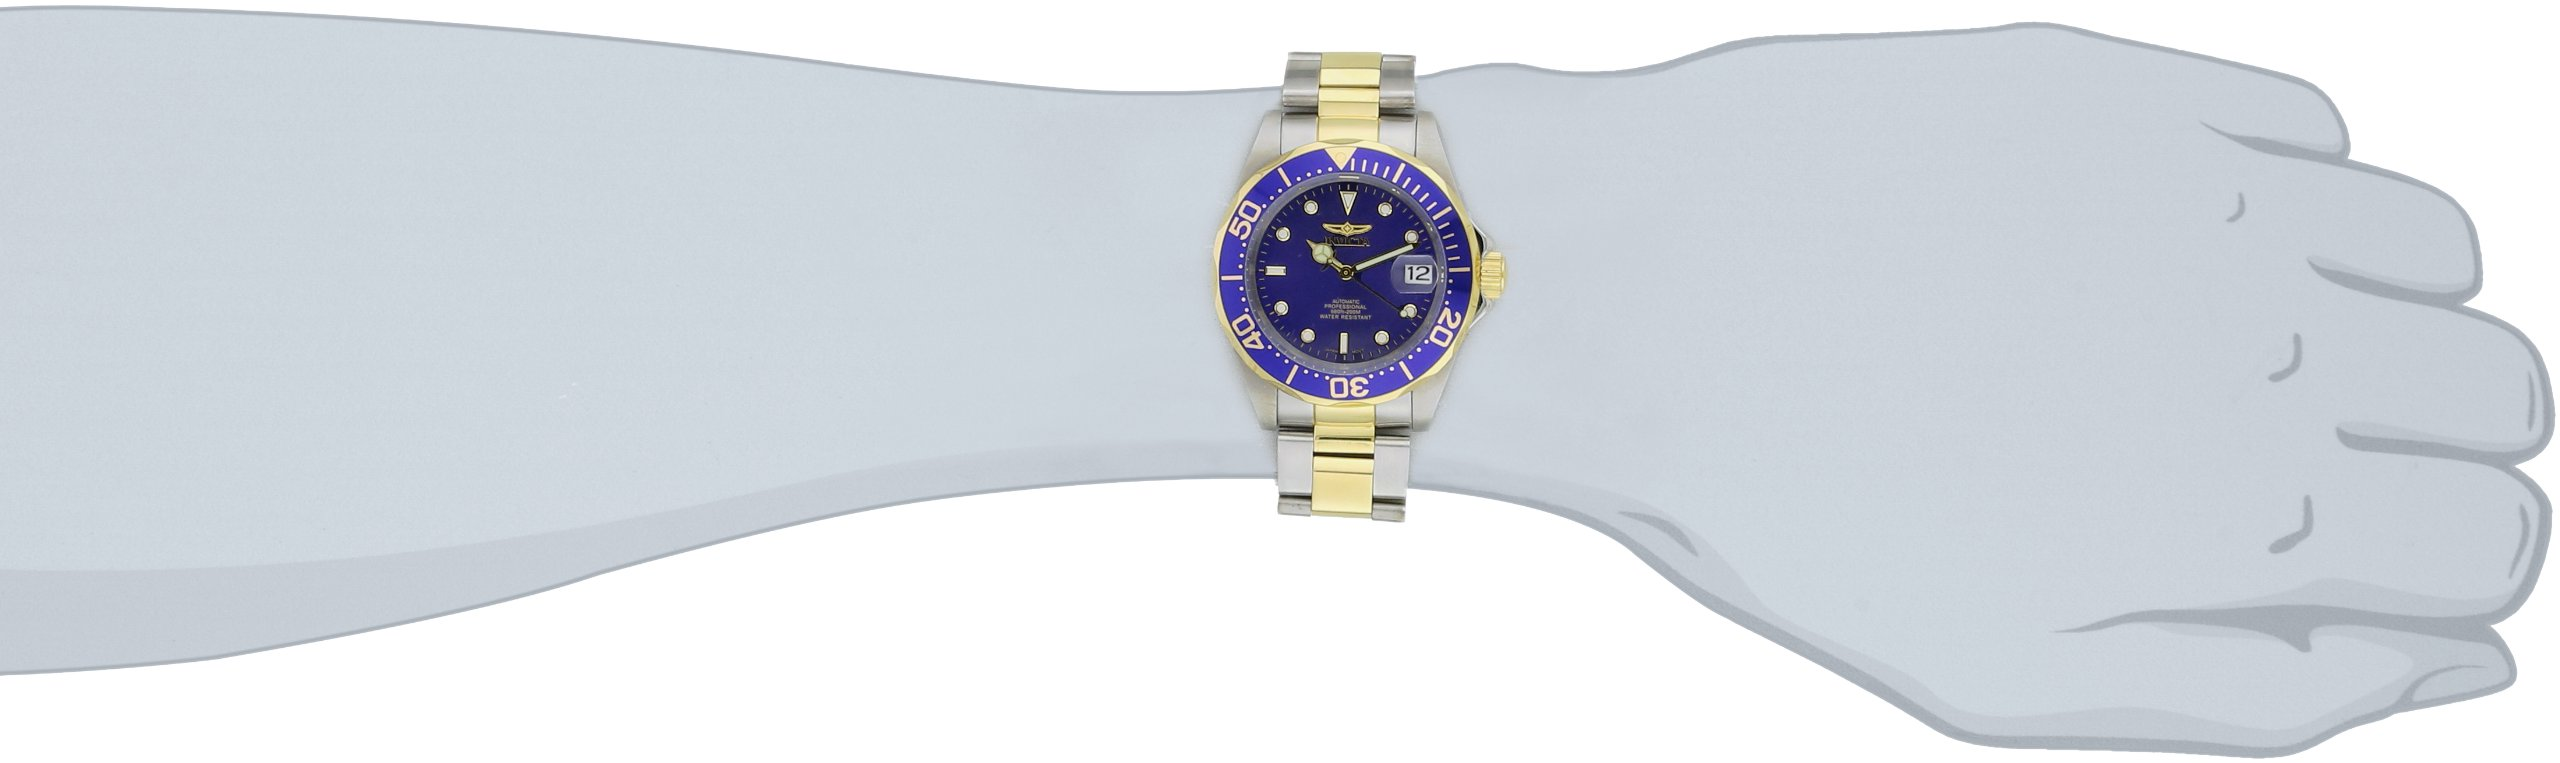 Invicta Pro-Diver Analog Blue Dial Men's Watch-8928